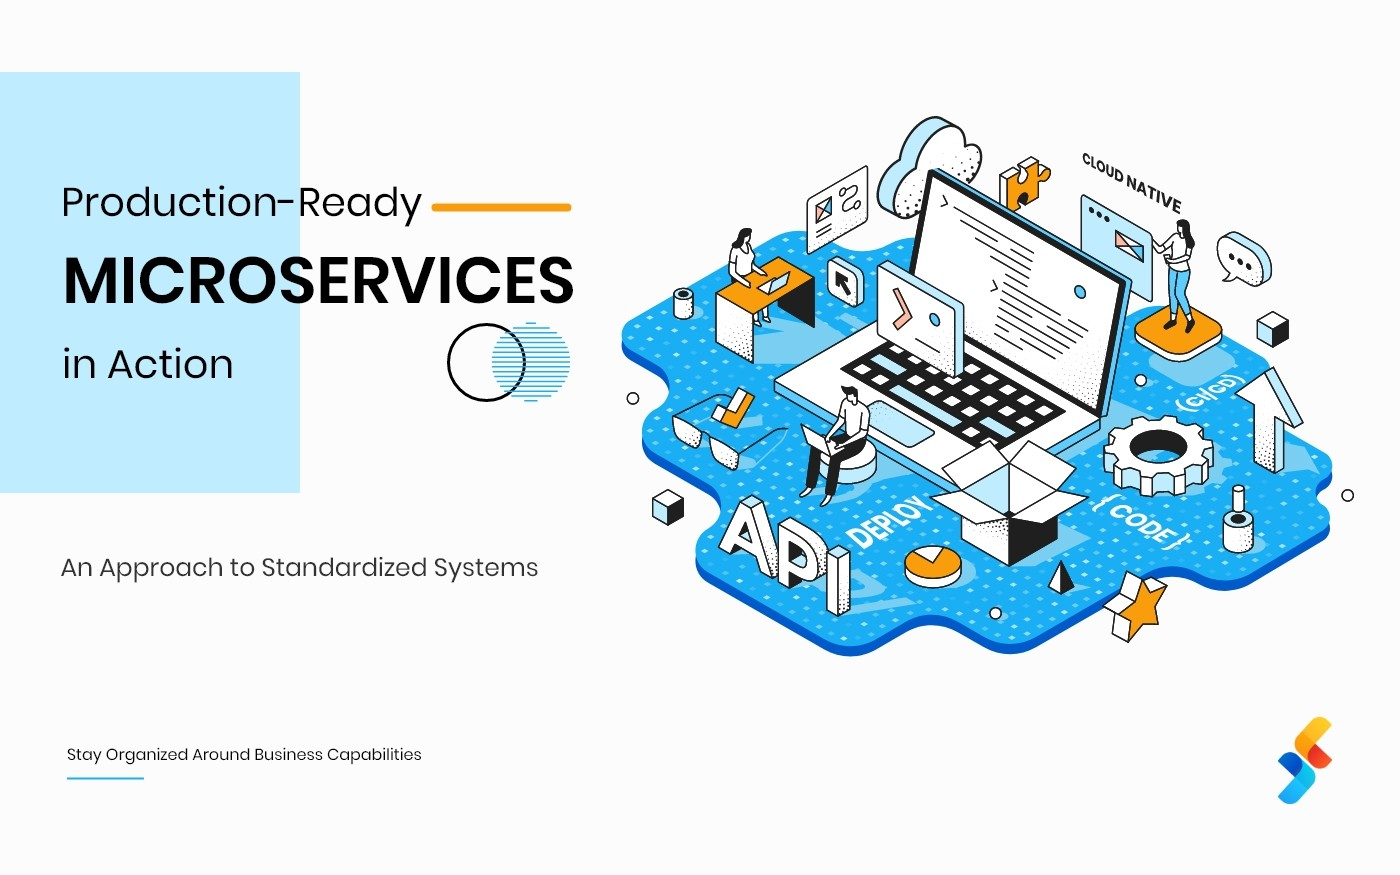 Microservices Apps